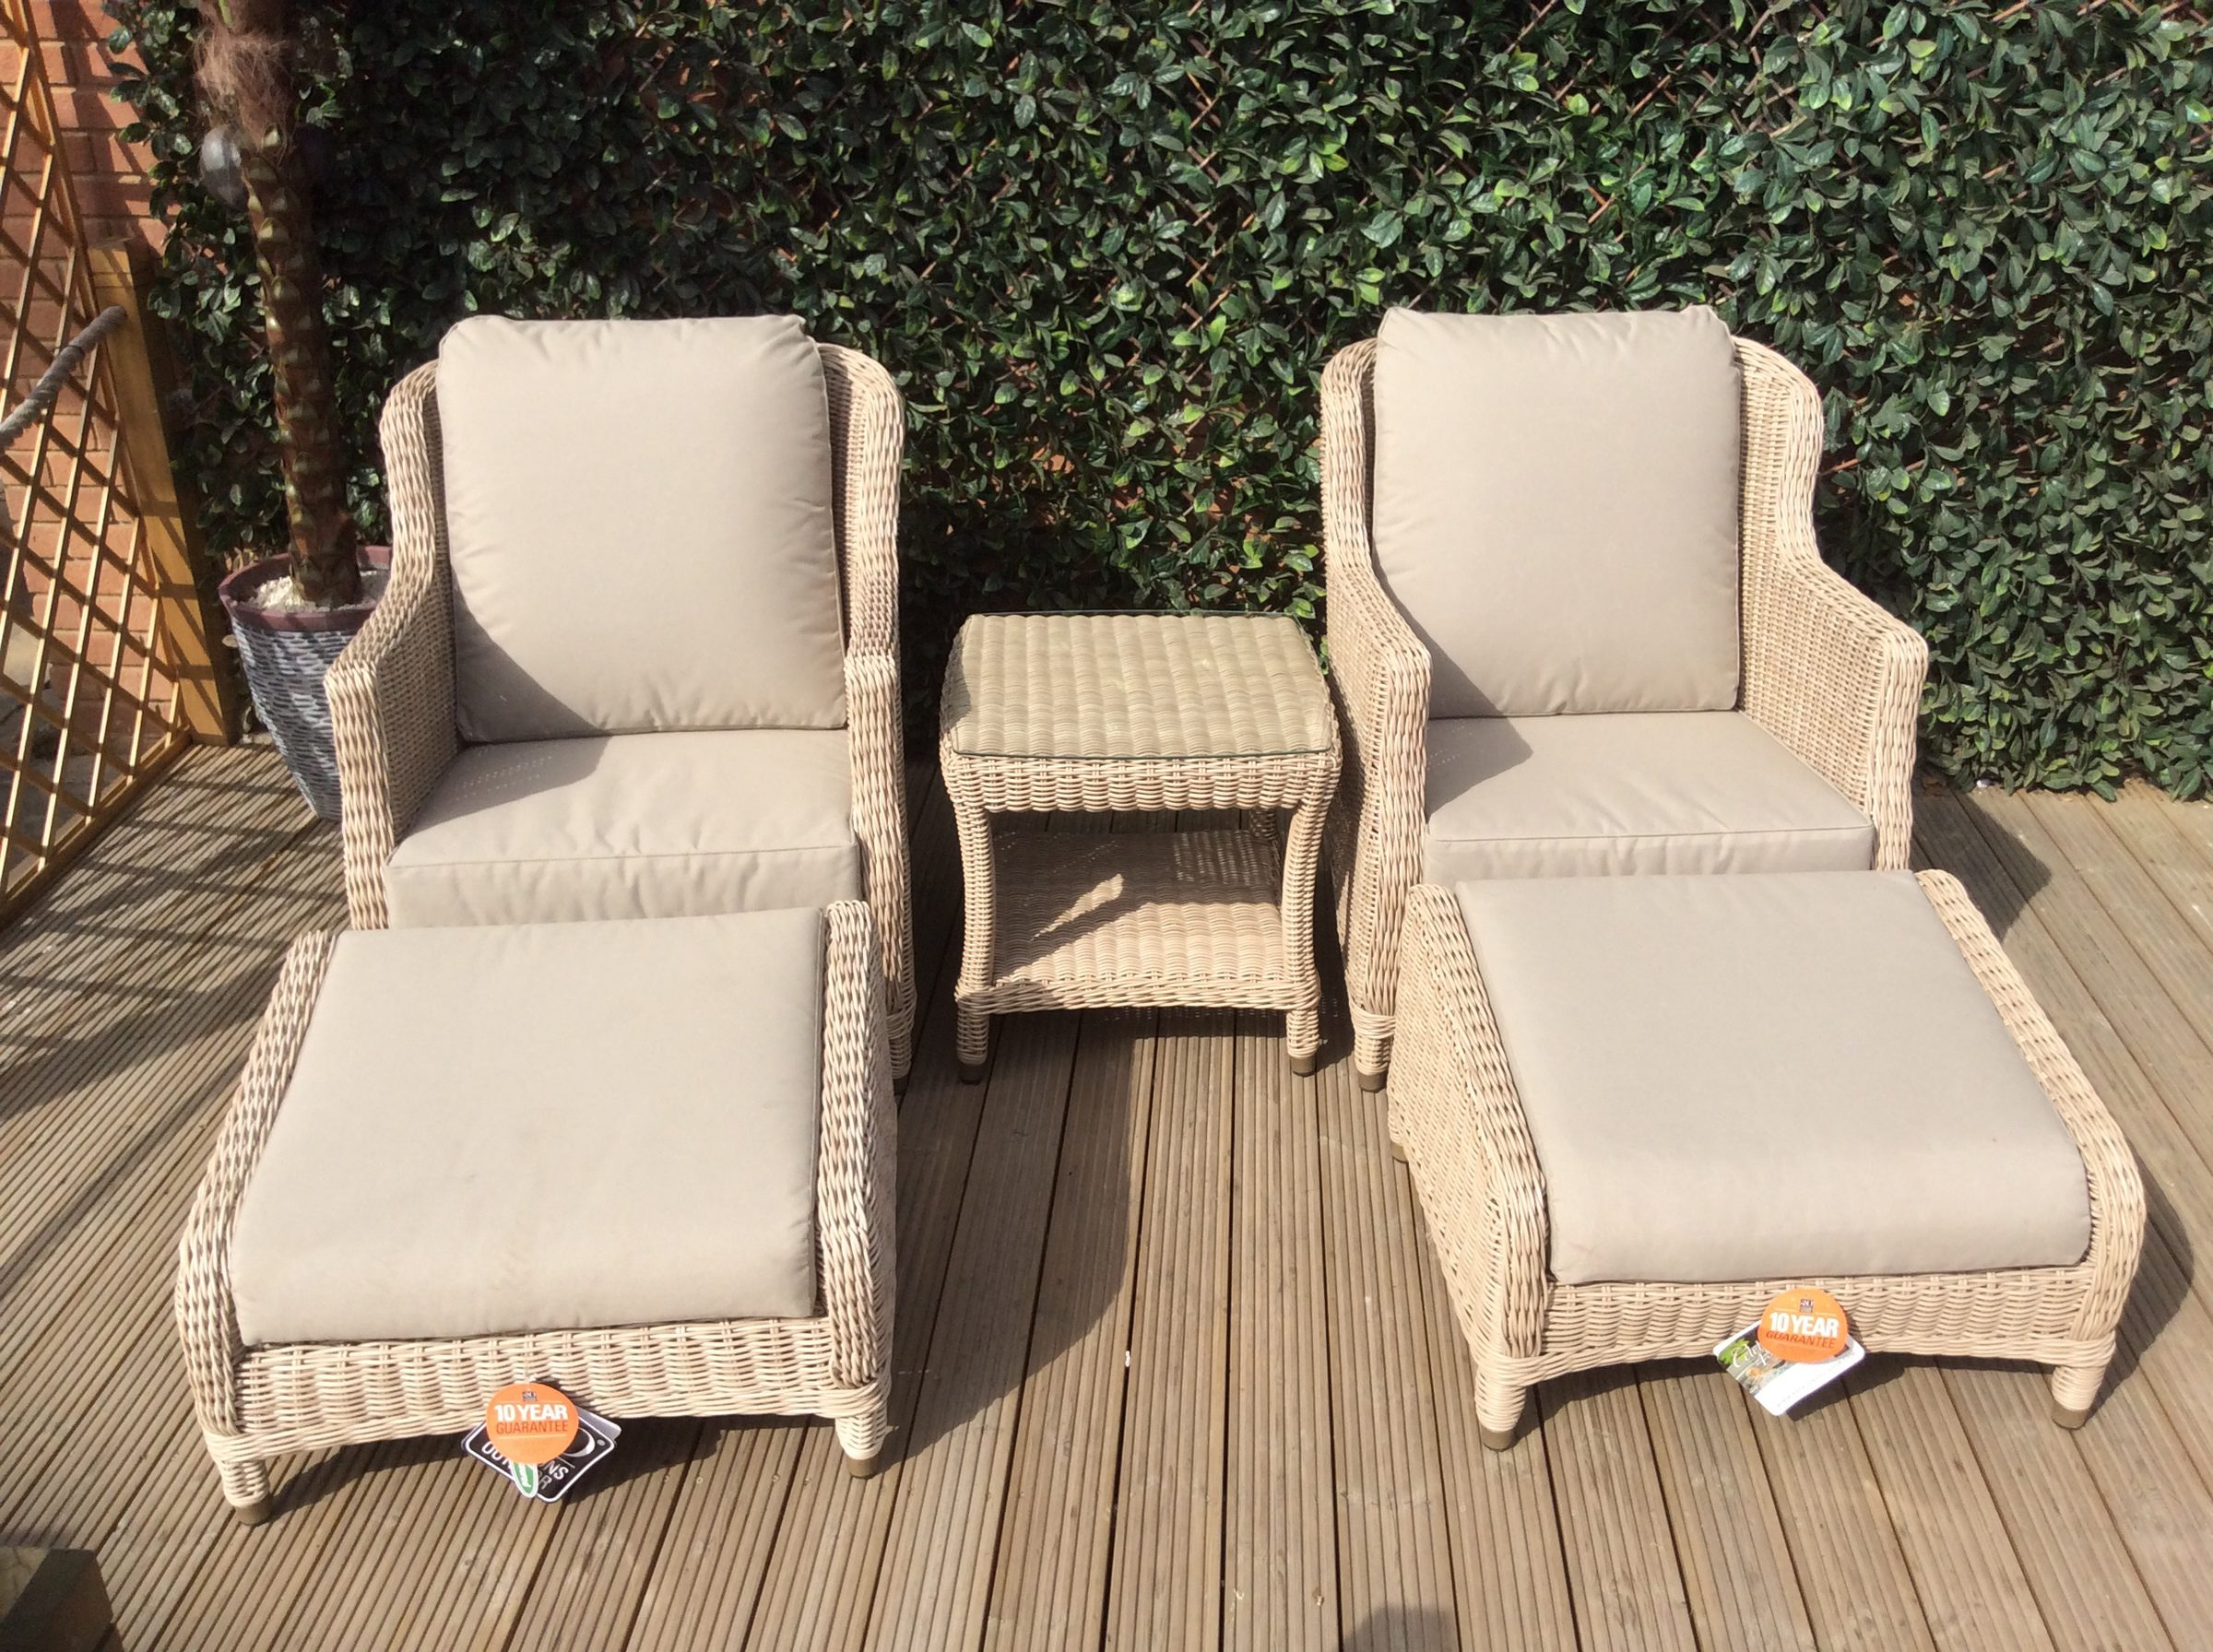 4 SEASONS OUTDOOR BRIGHTON RELAXING SET